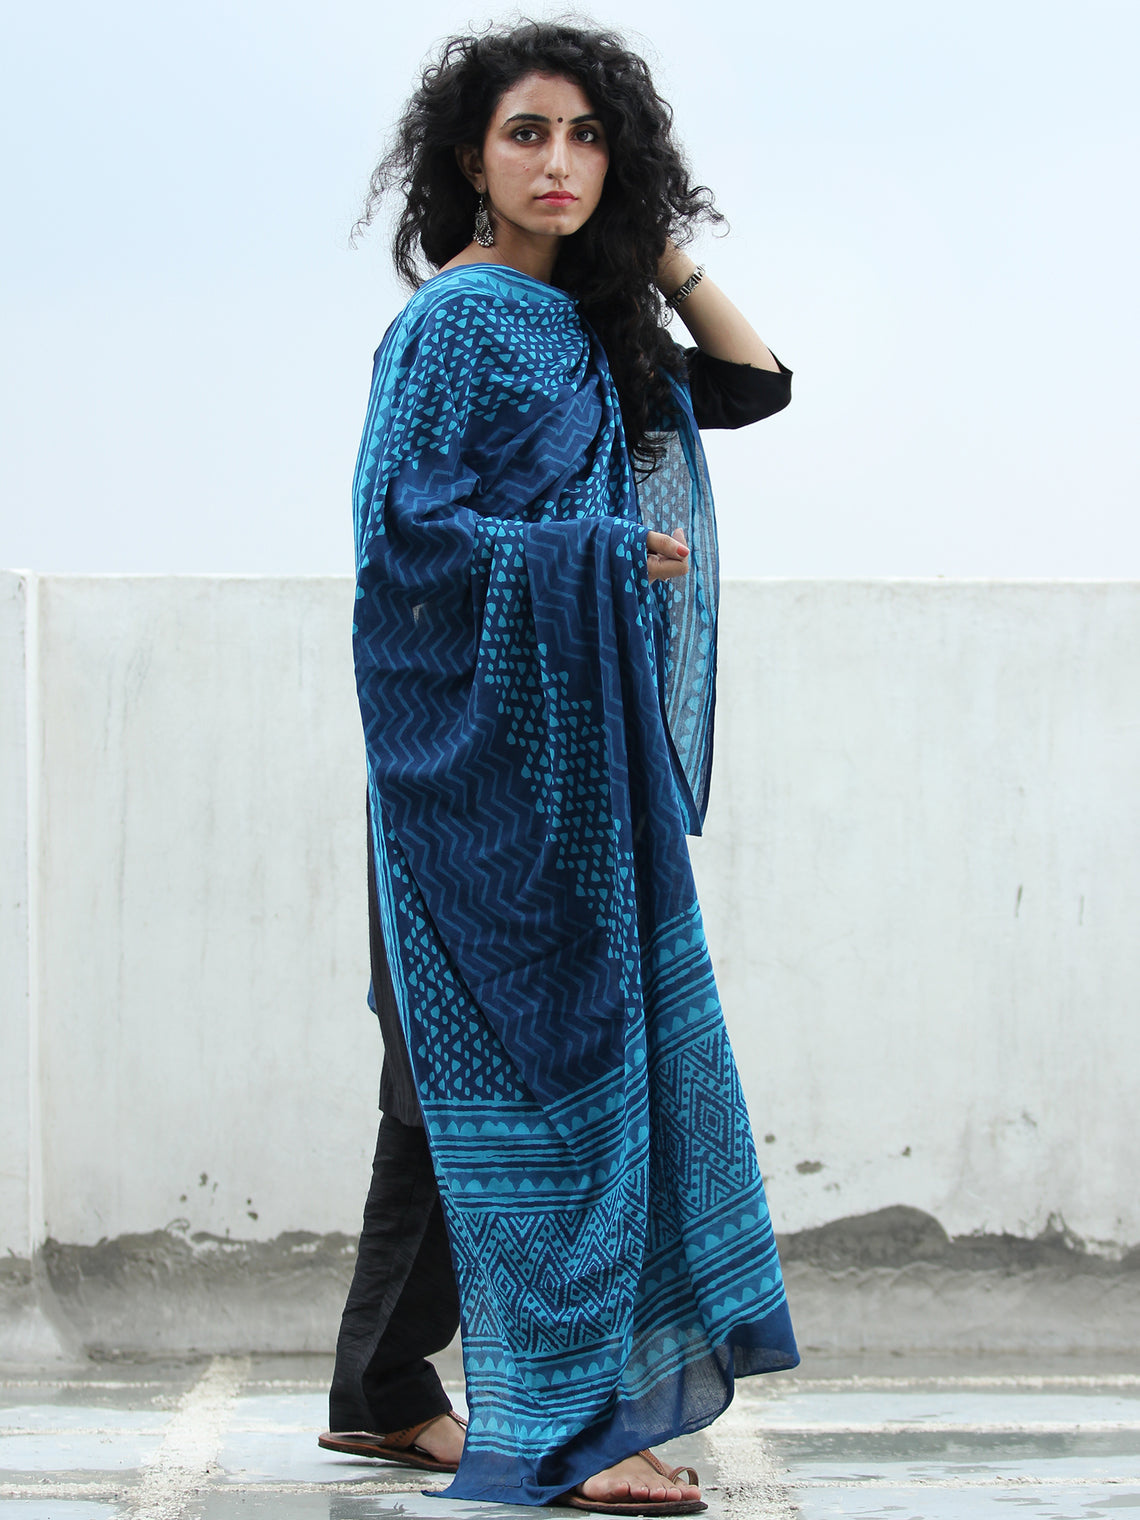 Indigo Sky Blue Cotton Hand Block Printed Dupatta   - D04170411